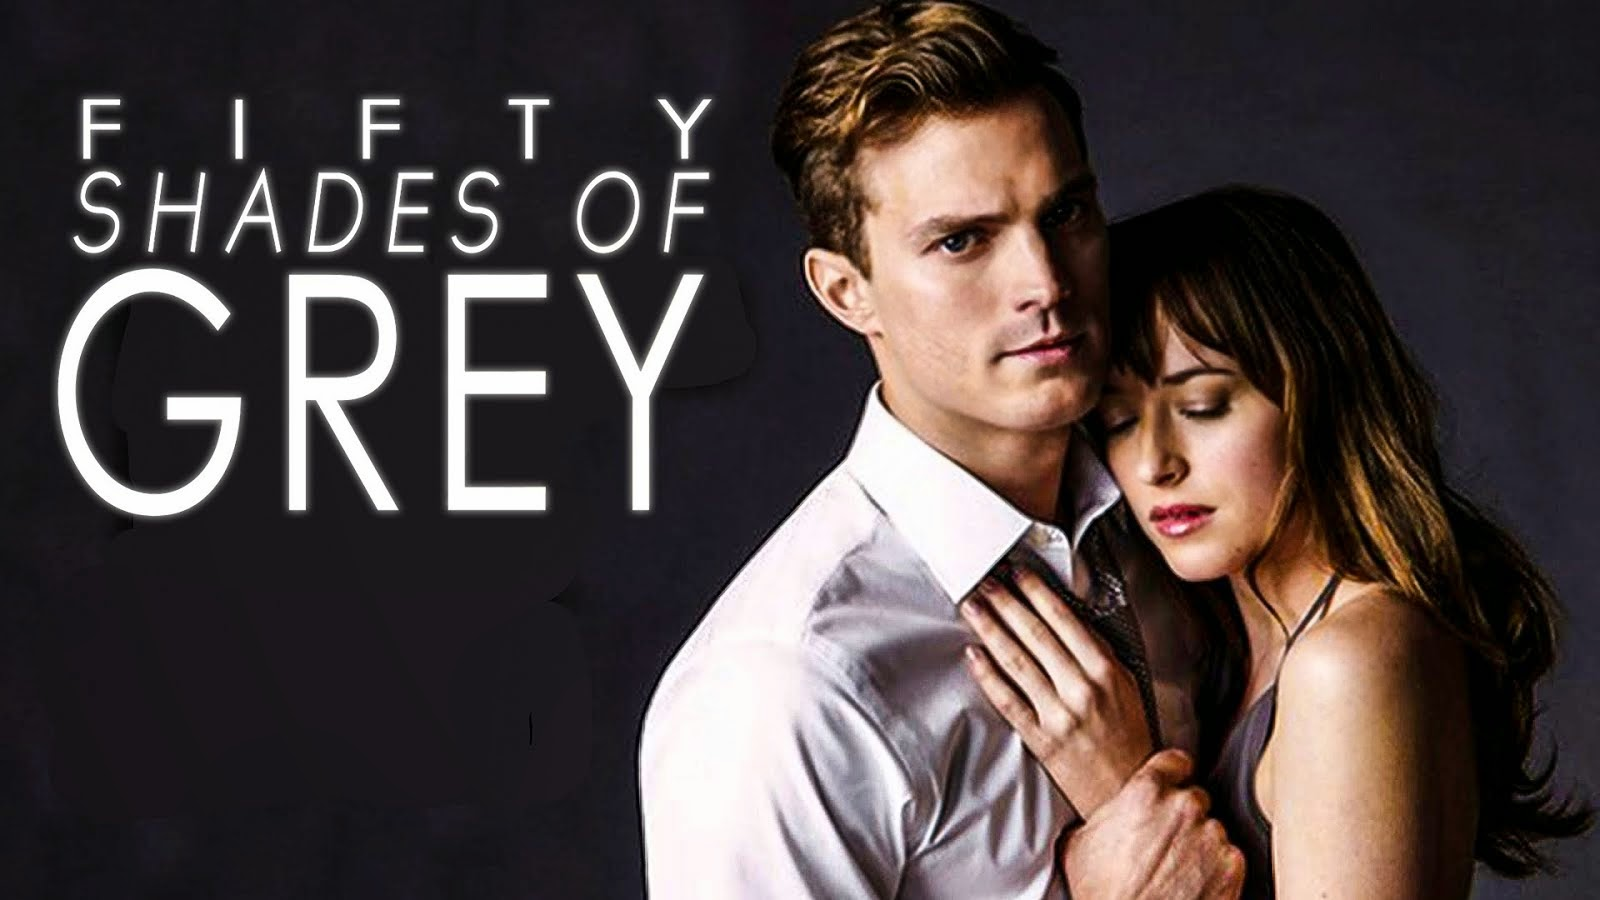 fifty shades of grey full movie download 2015 welcome For50 Shades Of Grey Films